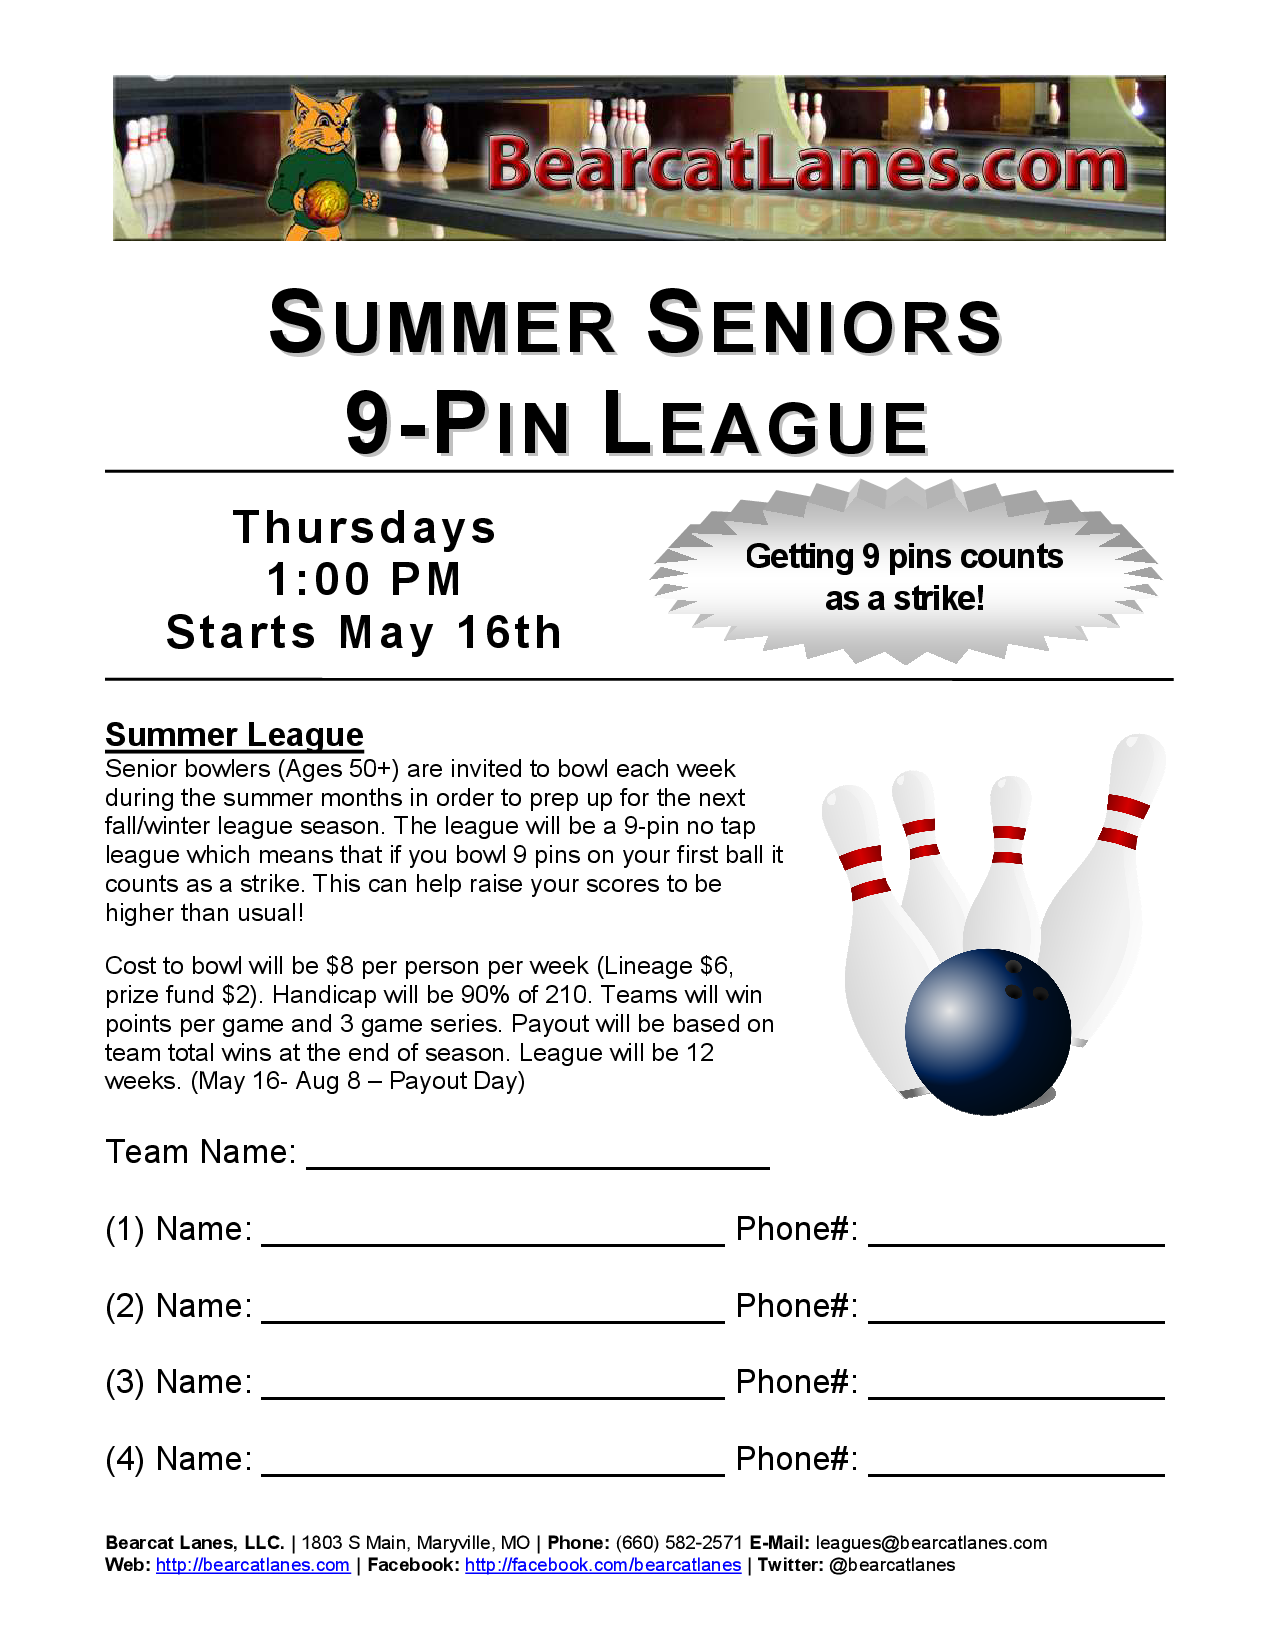 Summer Seniors 9-Pin No Tap